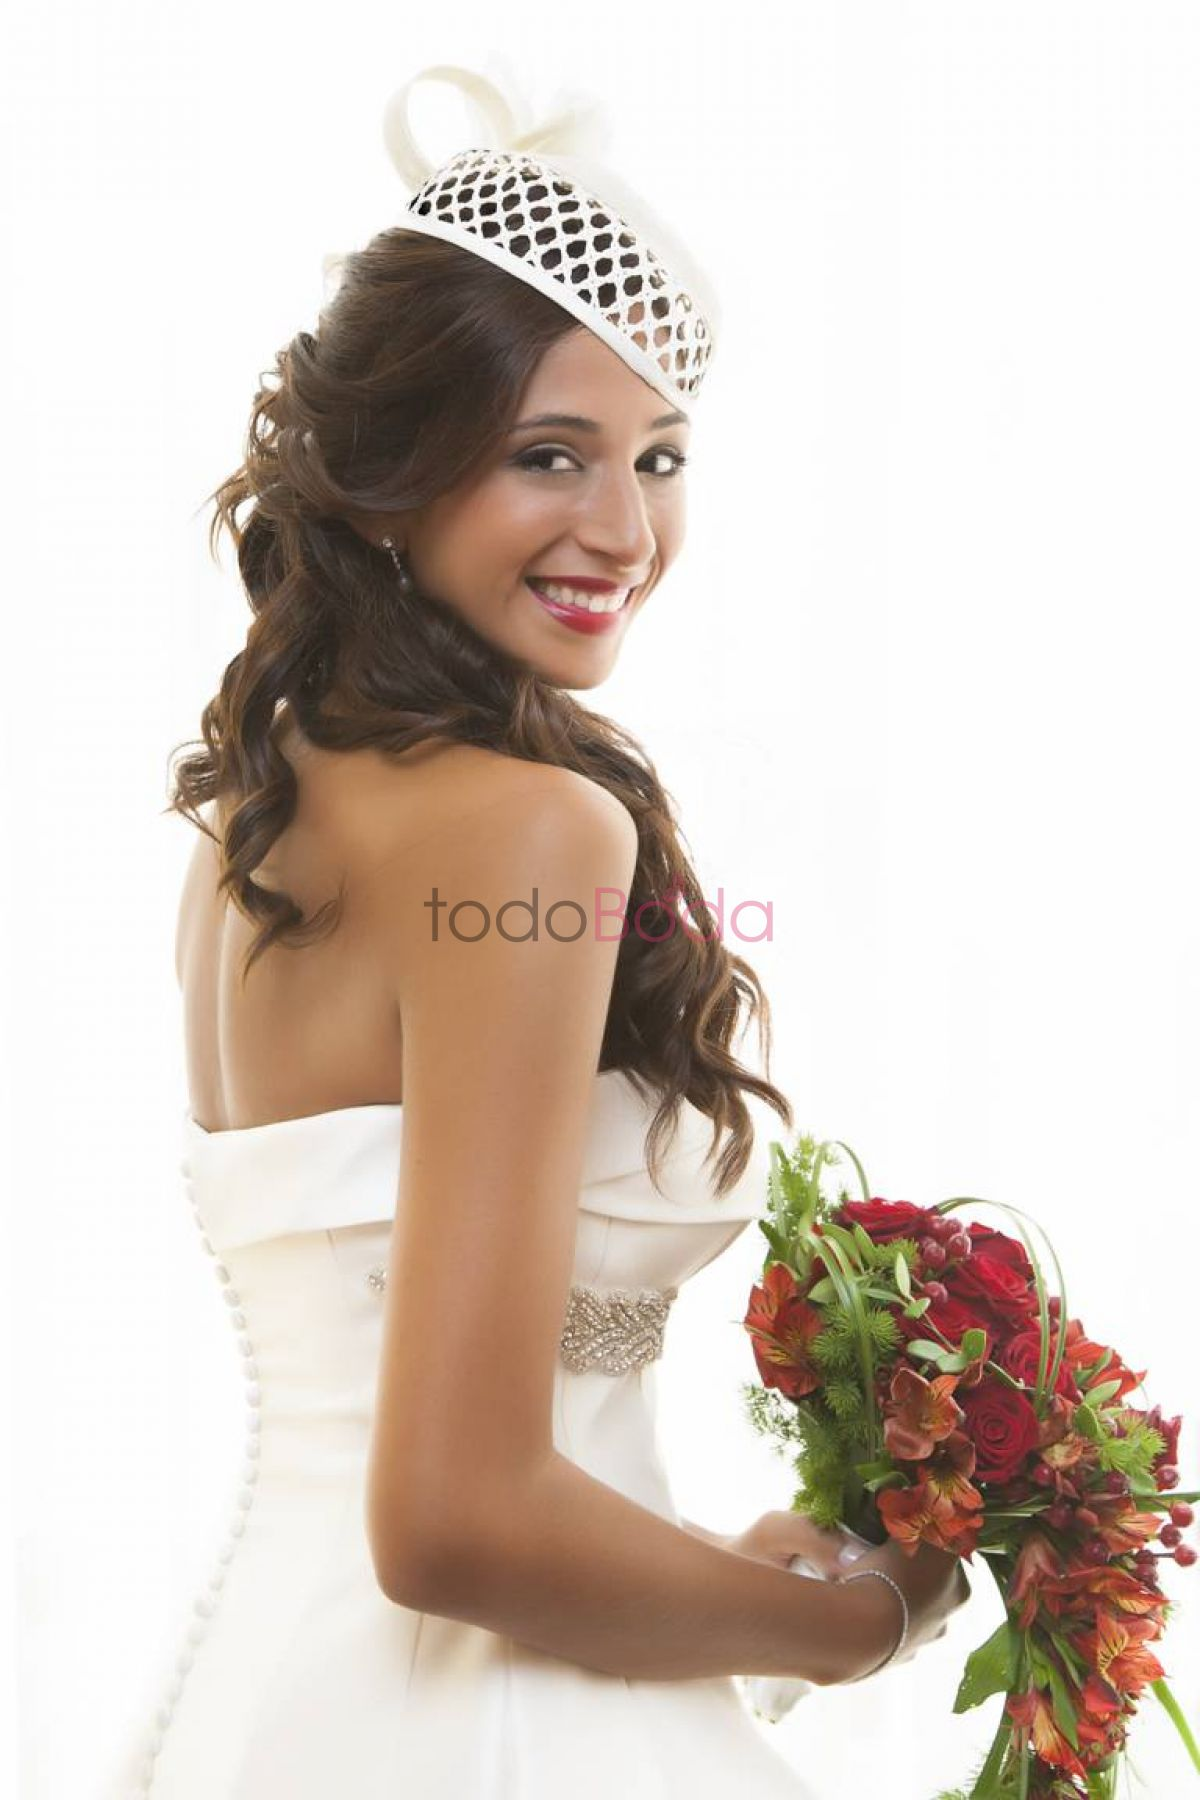 Tu boda en Only Digital Fotografia 4